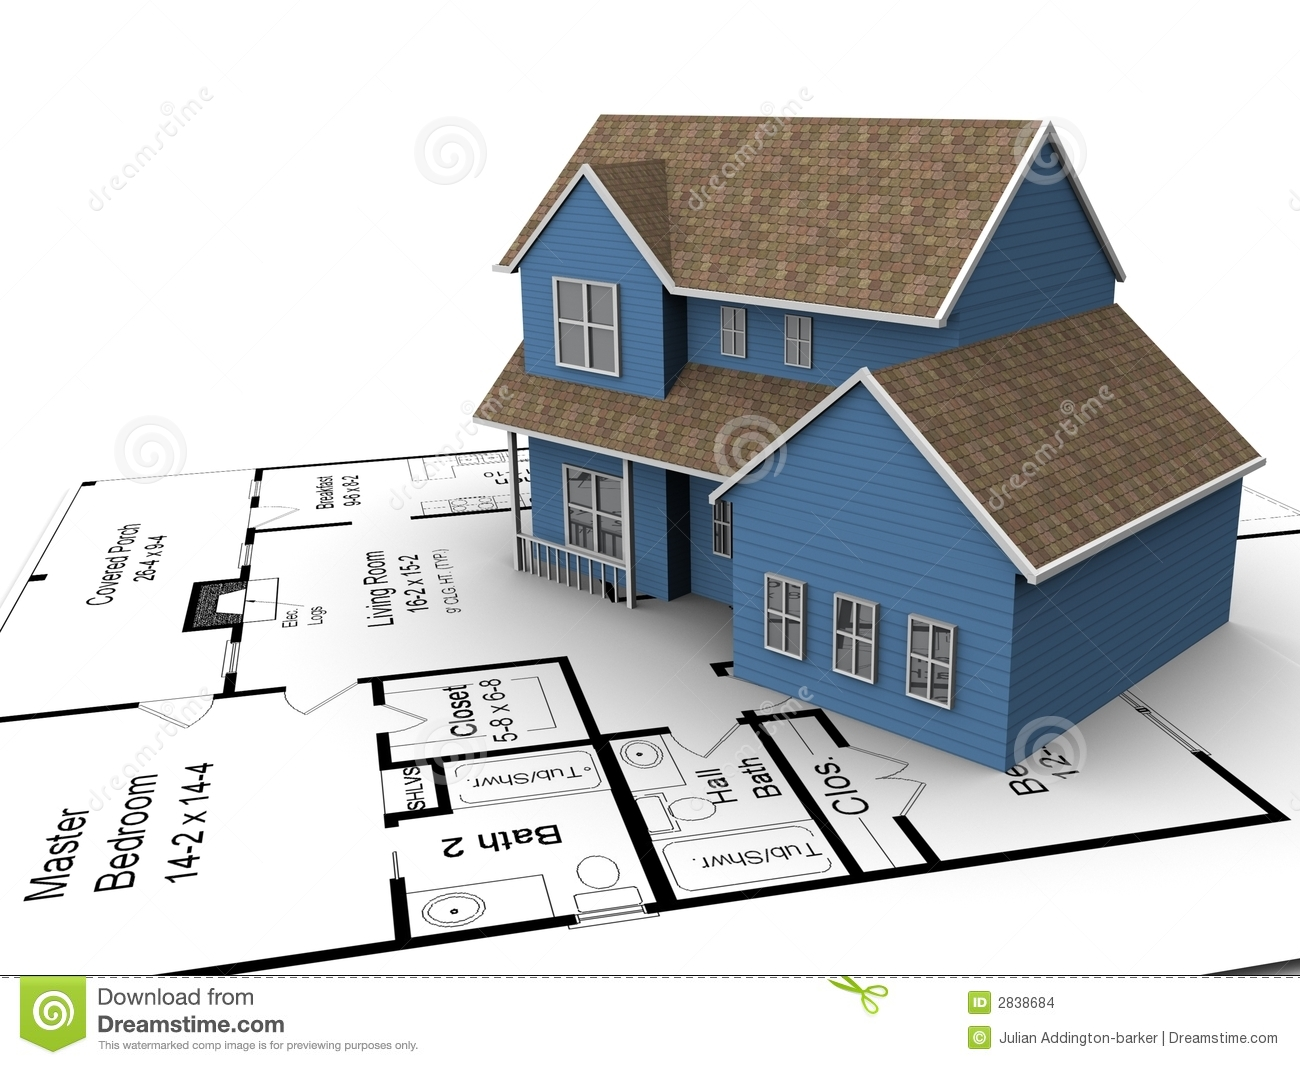 House plan clipart for Building design photos